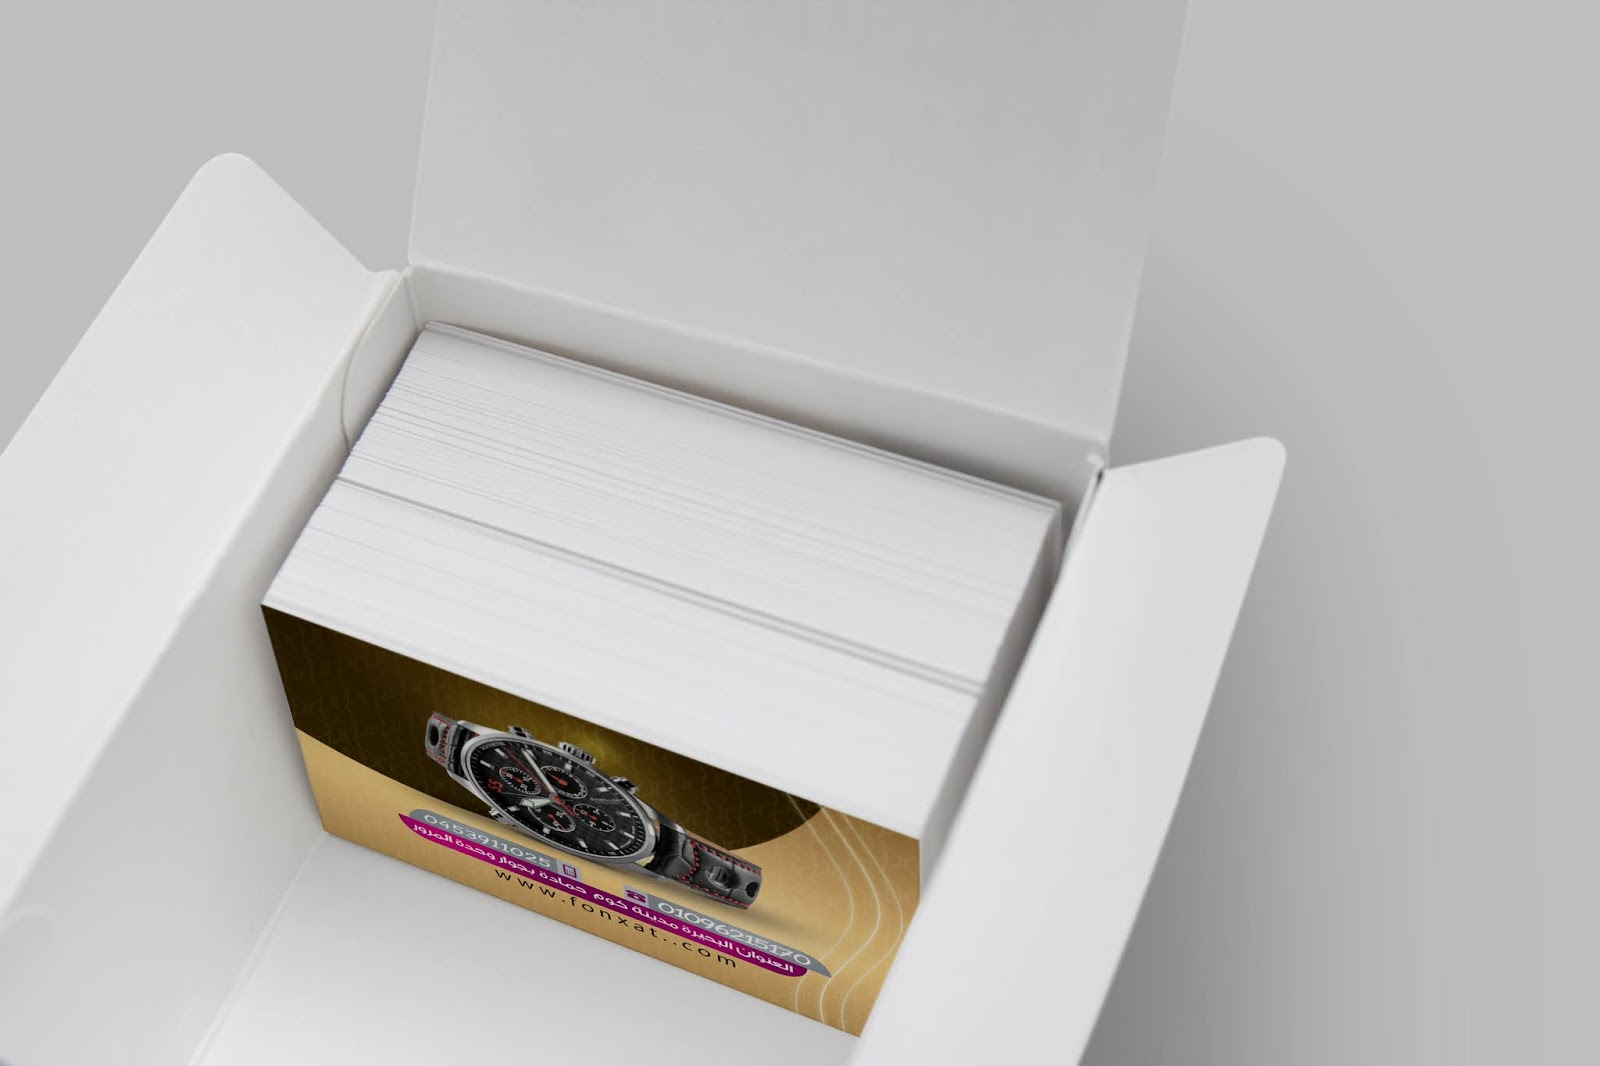 A personal card or a professional business card for watch sales and maintenance stores